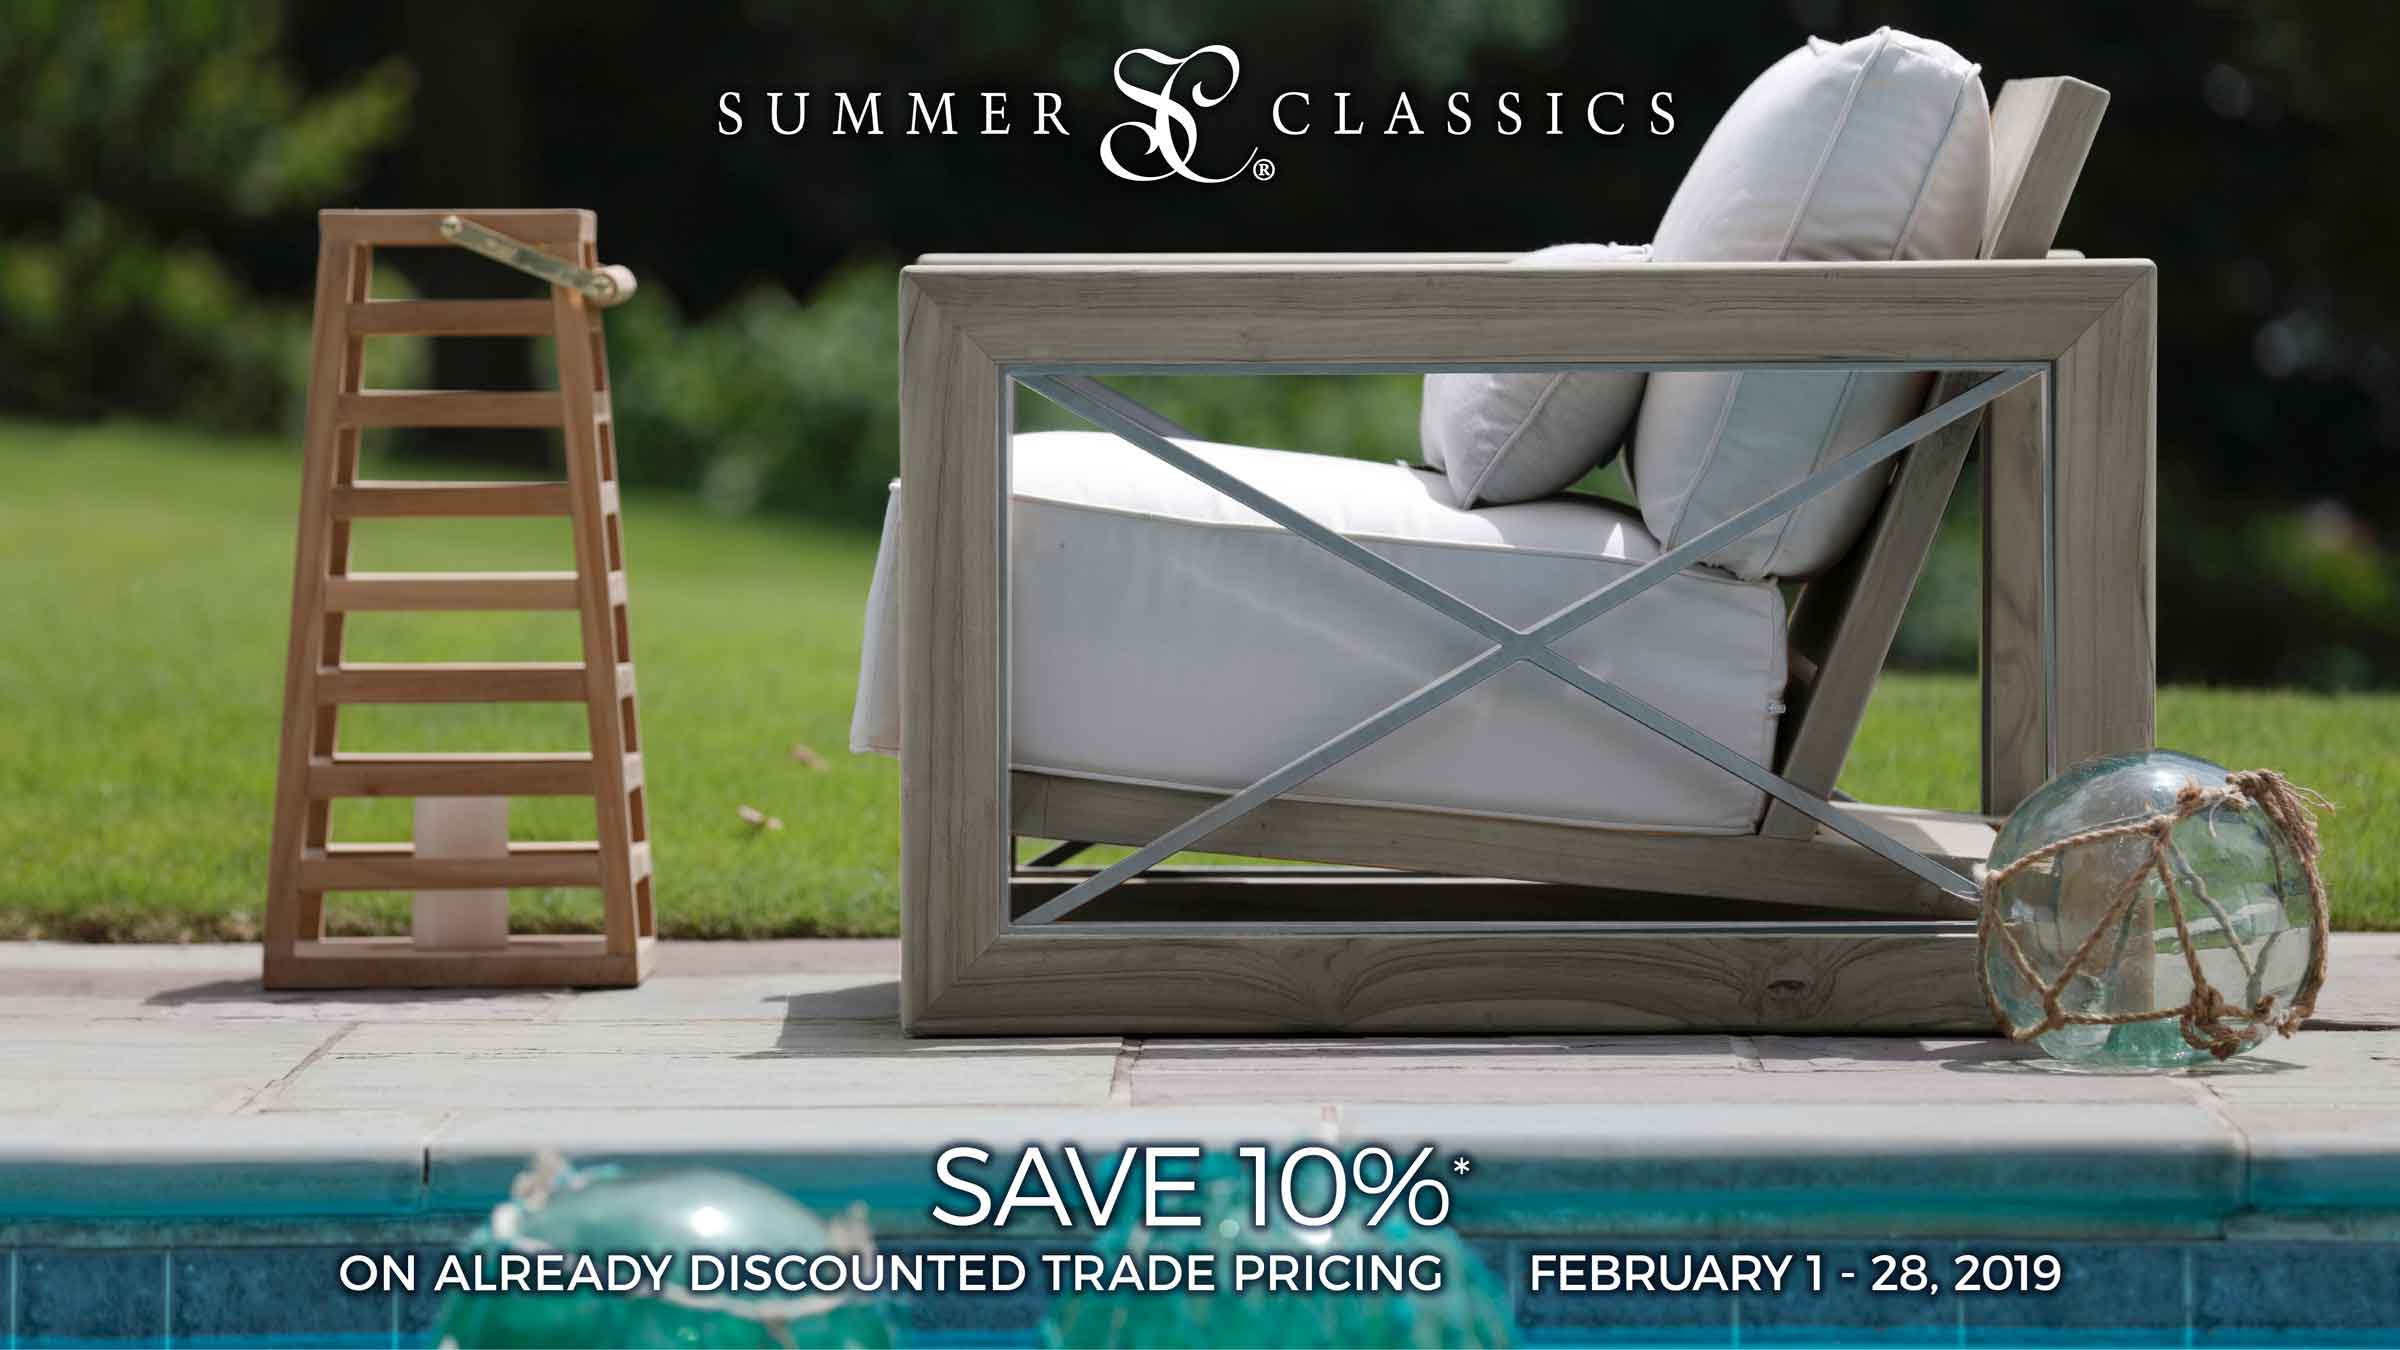 Summer Classics Sale throughout February 2019 at IDS